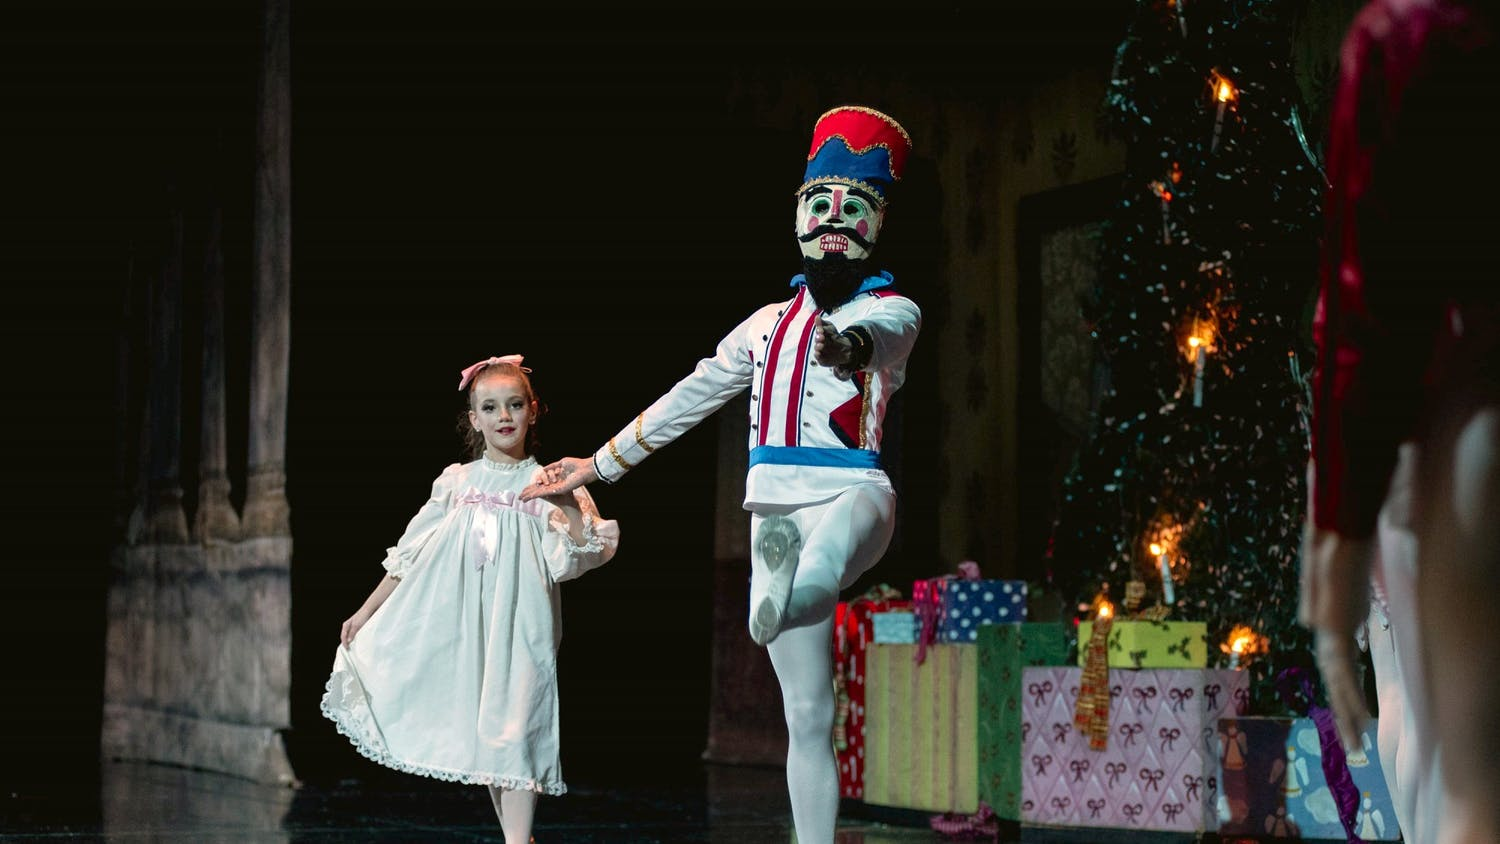 Ava Ramirez, who performs as Clara, and the Nutcracker share a dance in the traditional Christmas ballet.